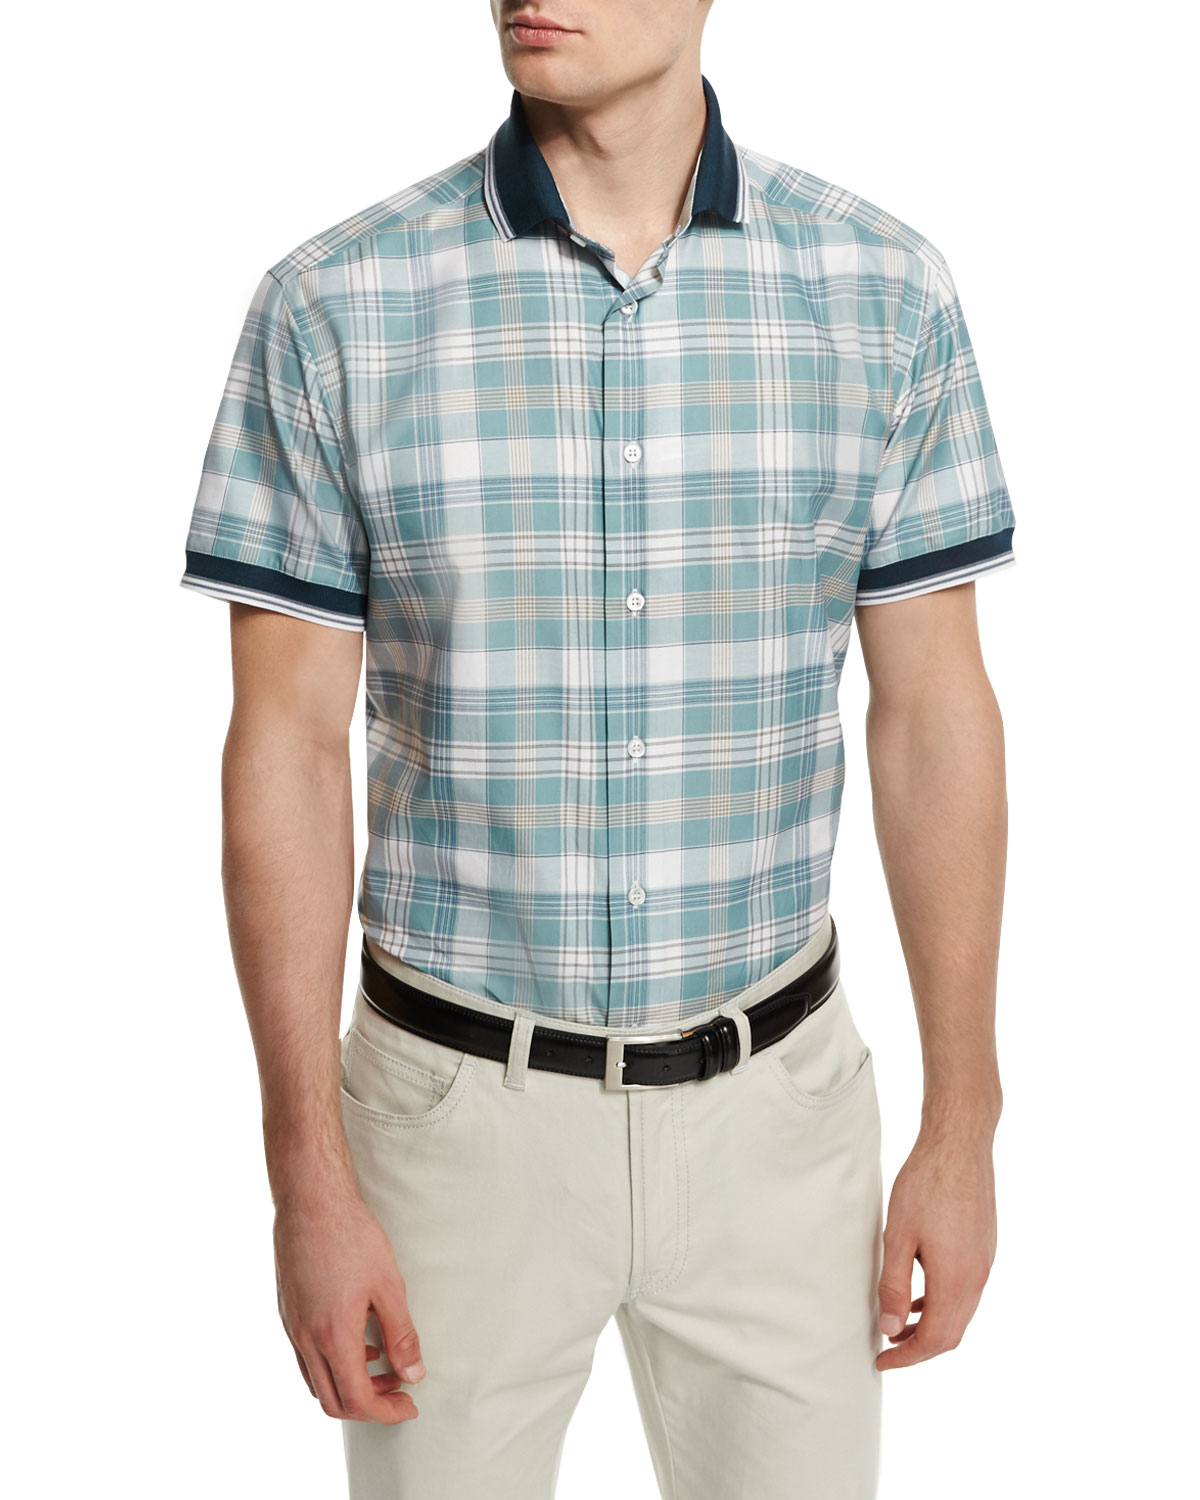 Brioni Plaid Short Sleeve Shirt With Contrast Trim In Blue